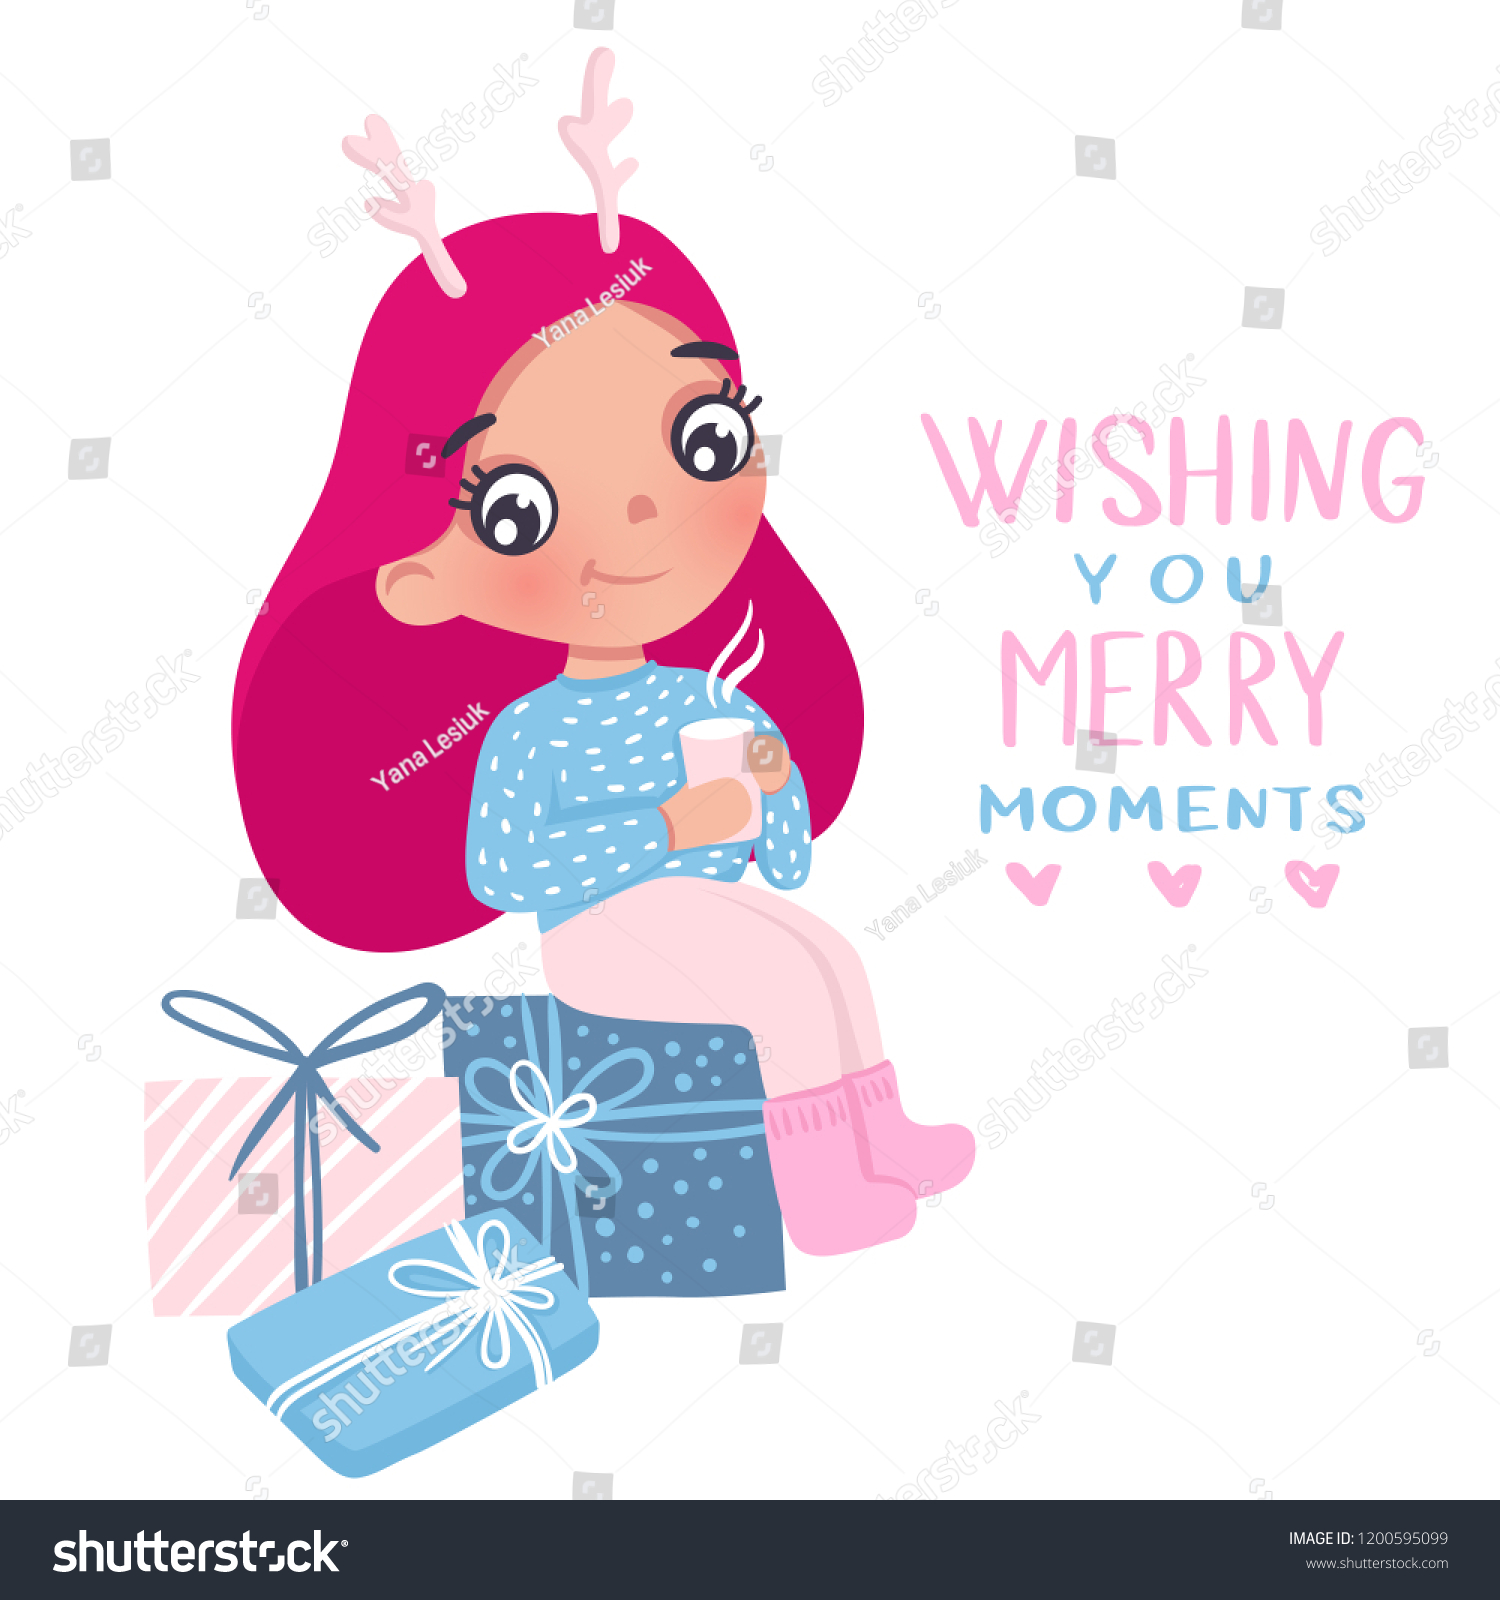 merry christmas and happy new year 2019 vector card cute little girl cartoon kids